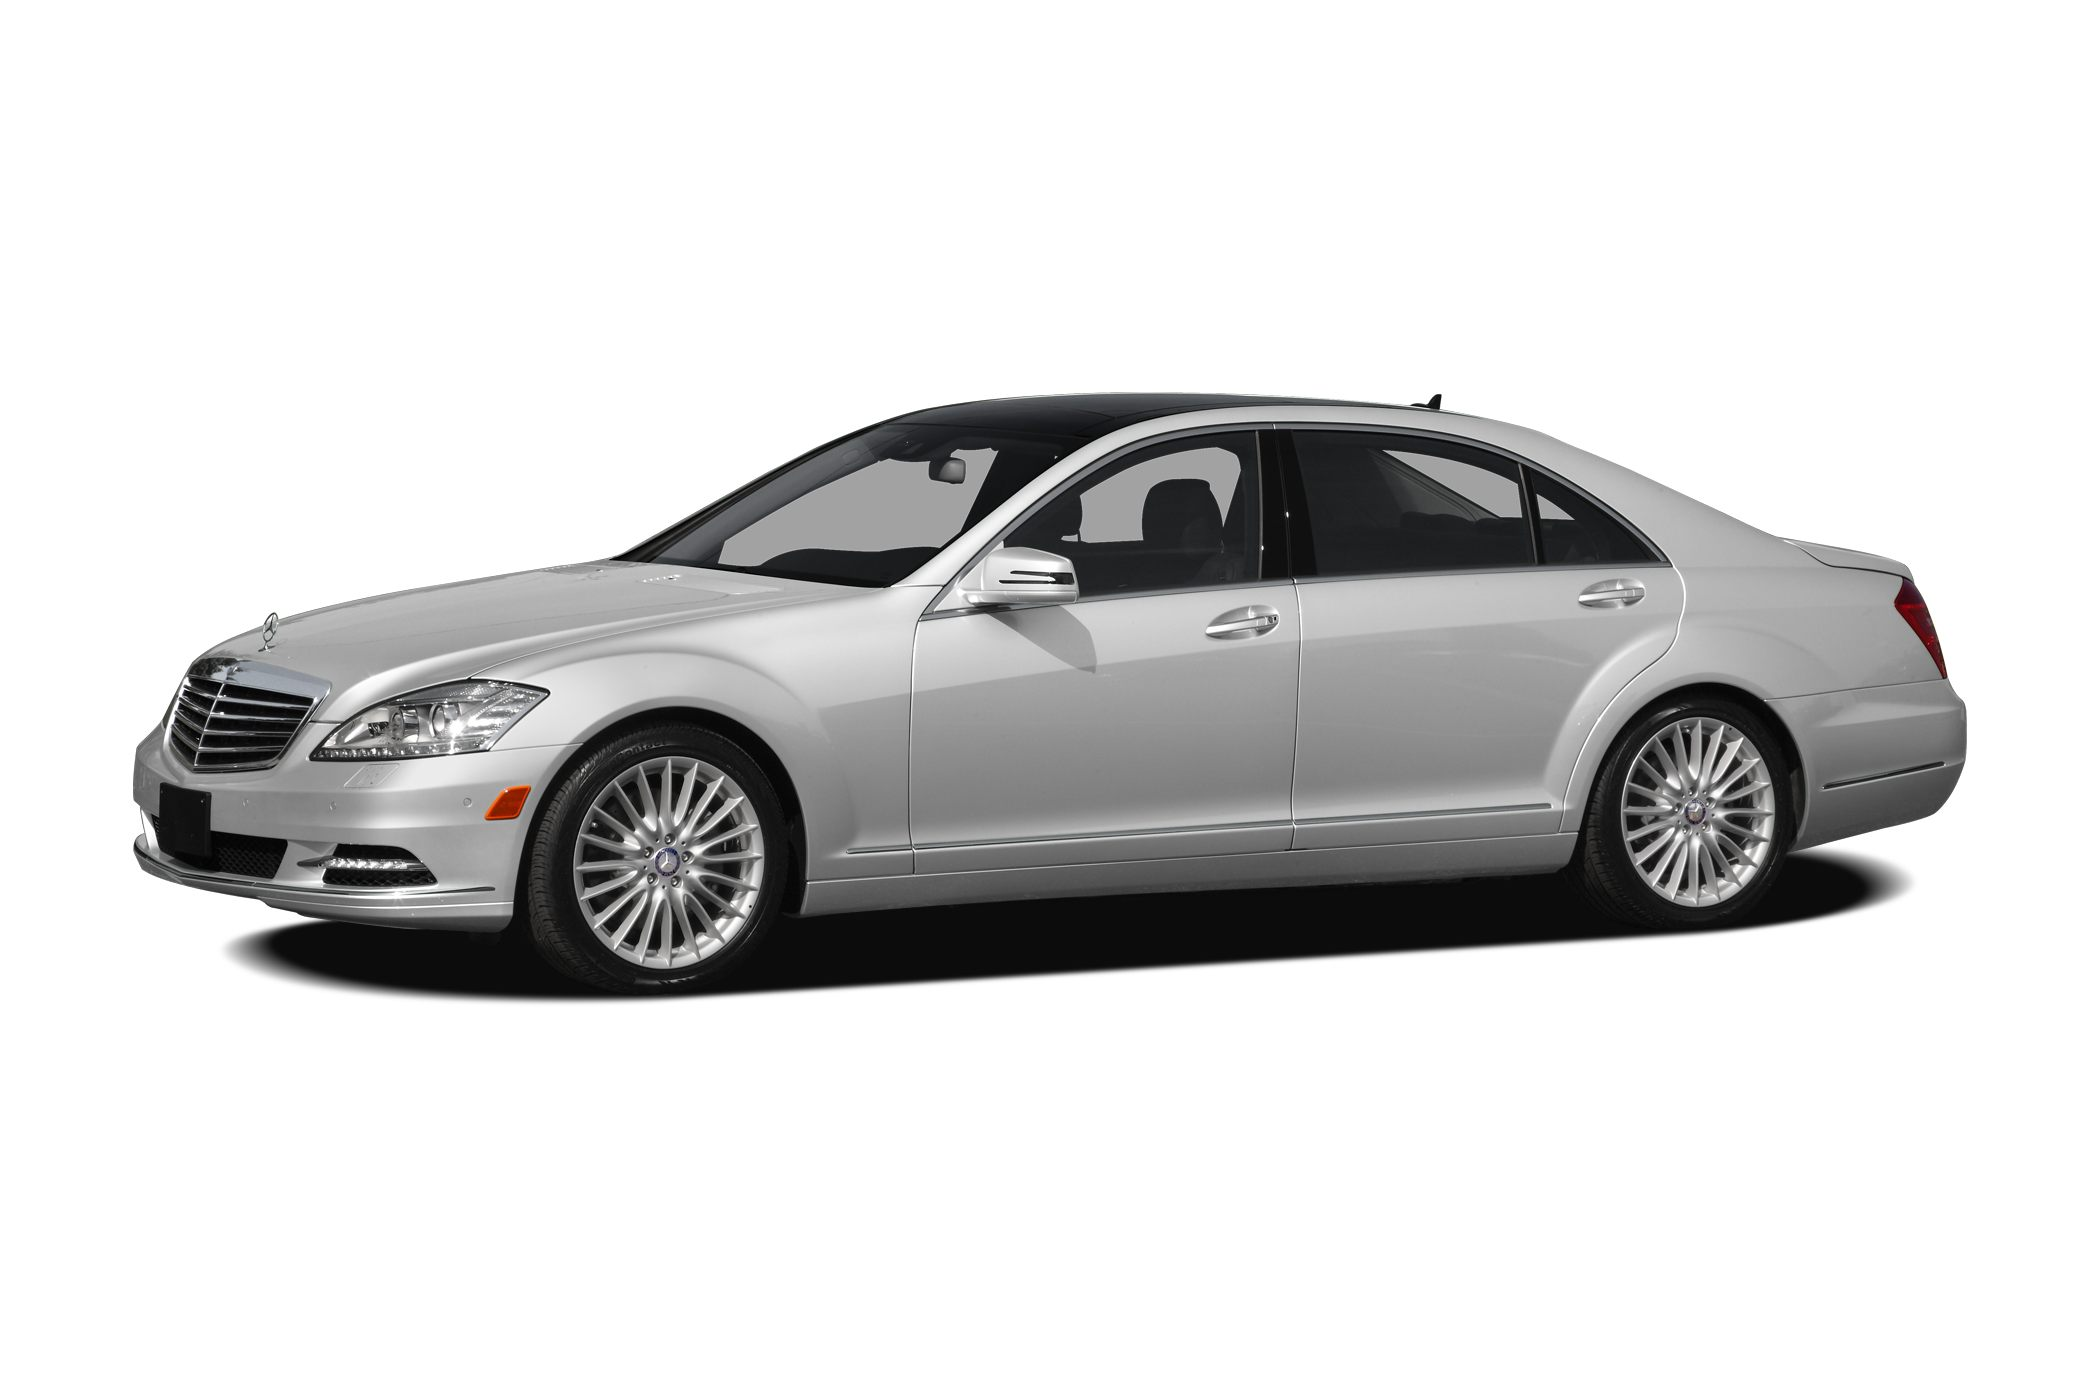 2011 Mercedes-Benz S-Class S550 4MATIC Sedan for sale in Marietta for $42,999 with 30,909 miles.